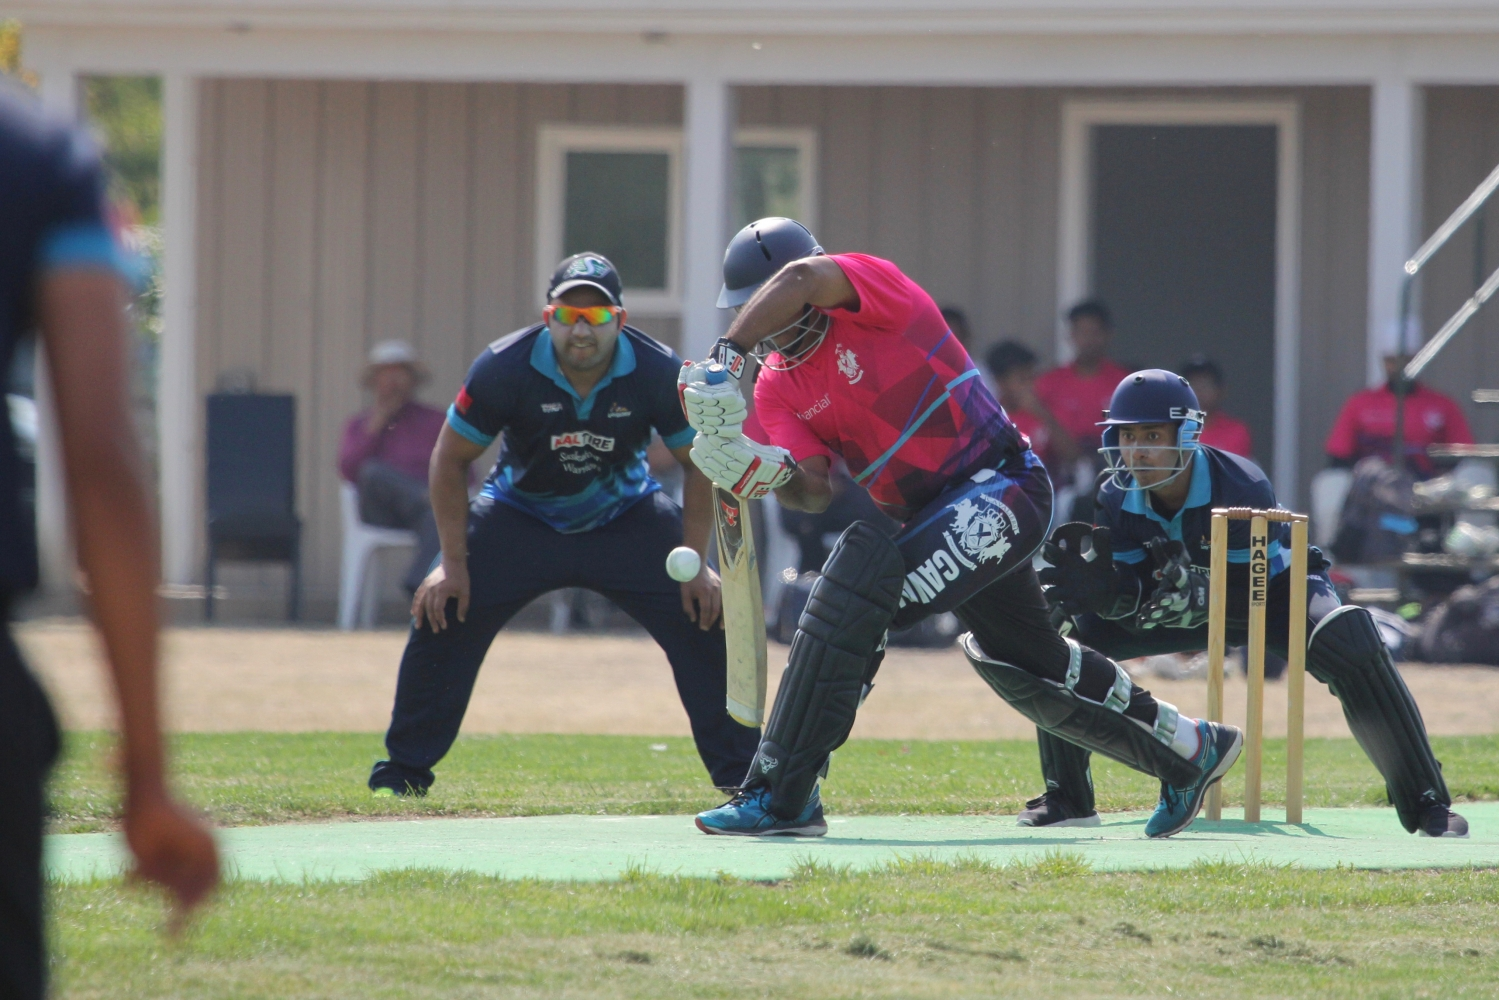 Saskatchewan provincial T20 Cricket finals this Sunday at Douglas Park in Regina